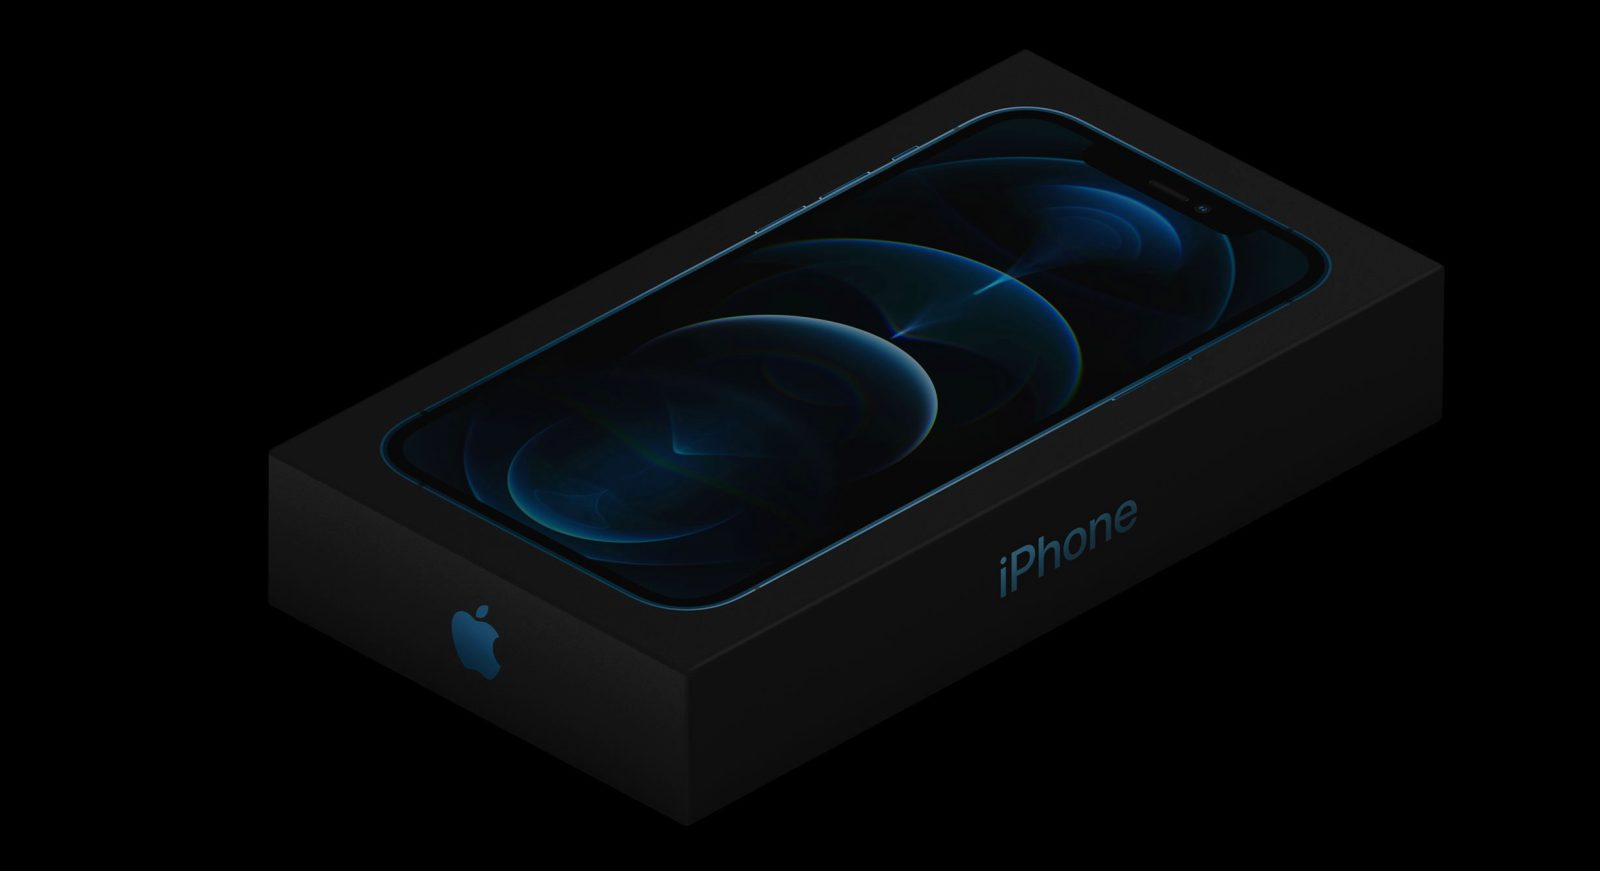 Download Apples iPhone 12 and iPhone 12 Pro wallpapers   9to5Mac 1600x871